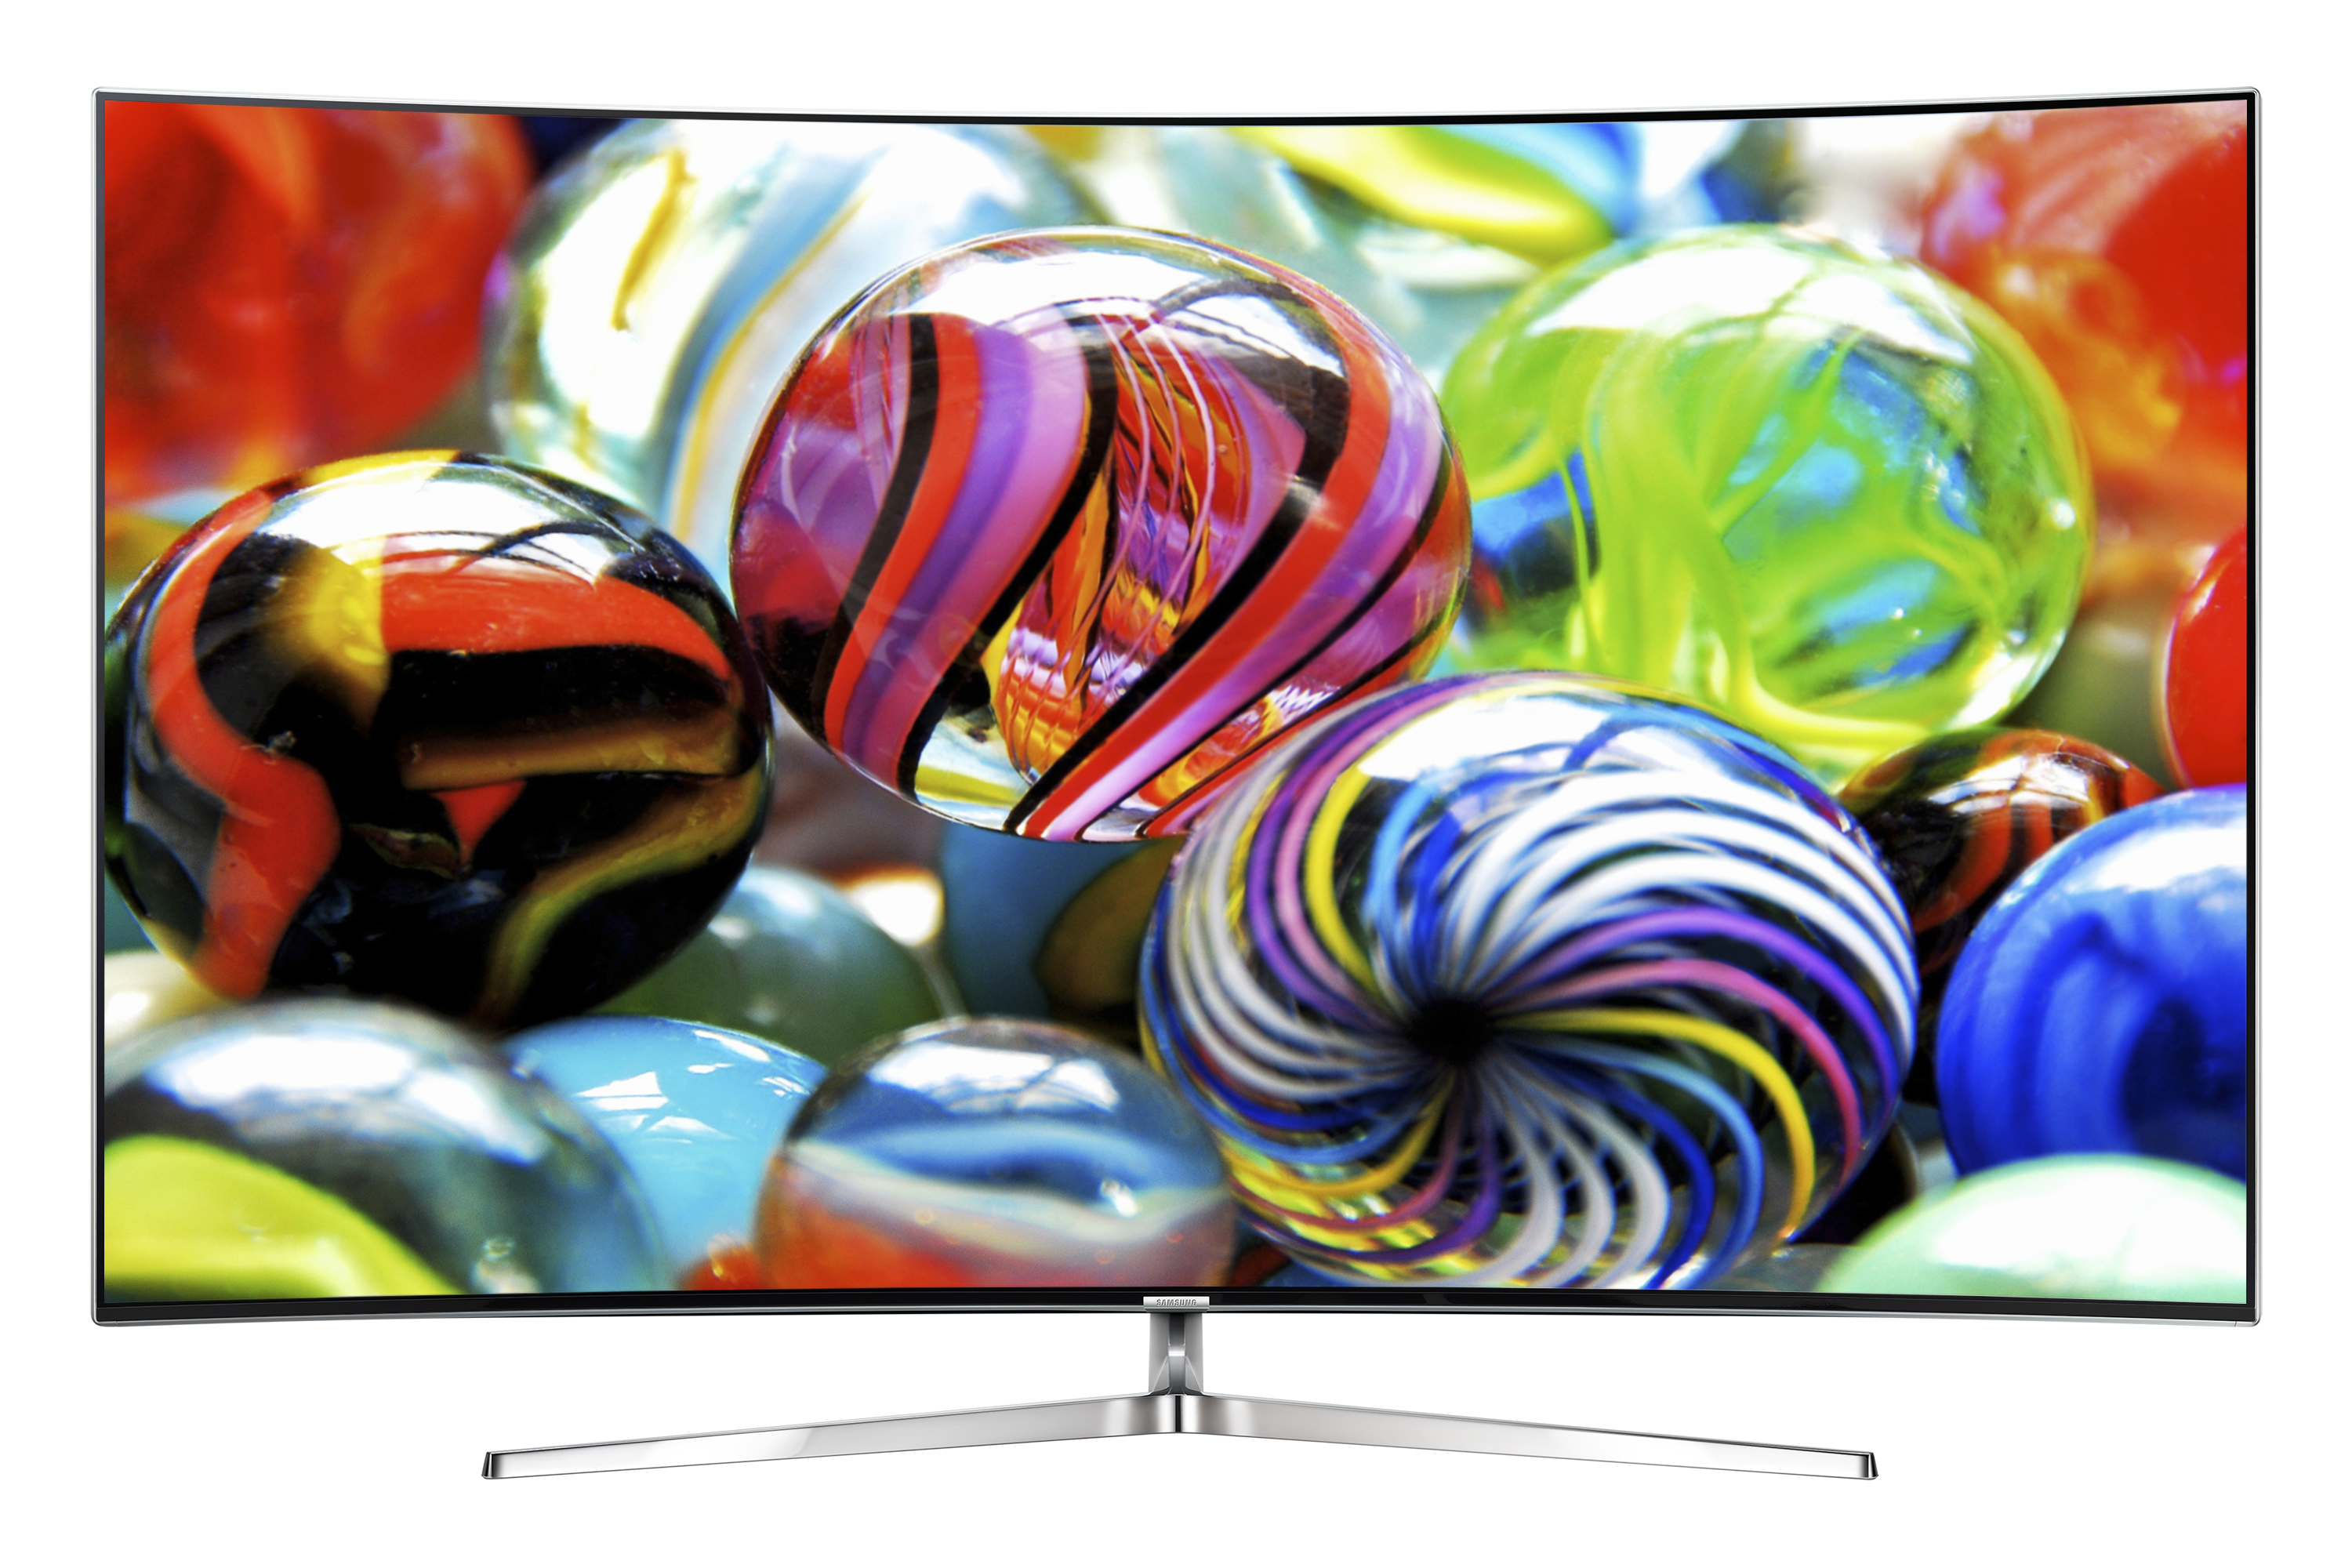 Series 9 78 inch KS9500 Curved 4K SUHD TV*